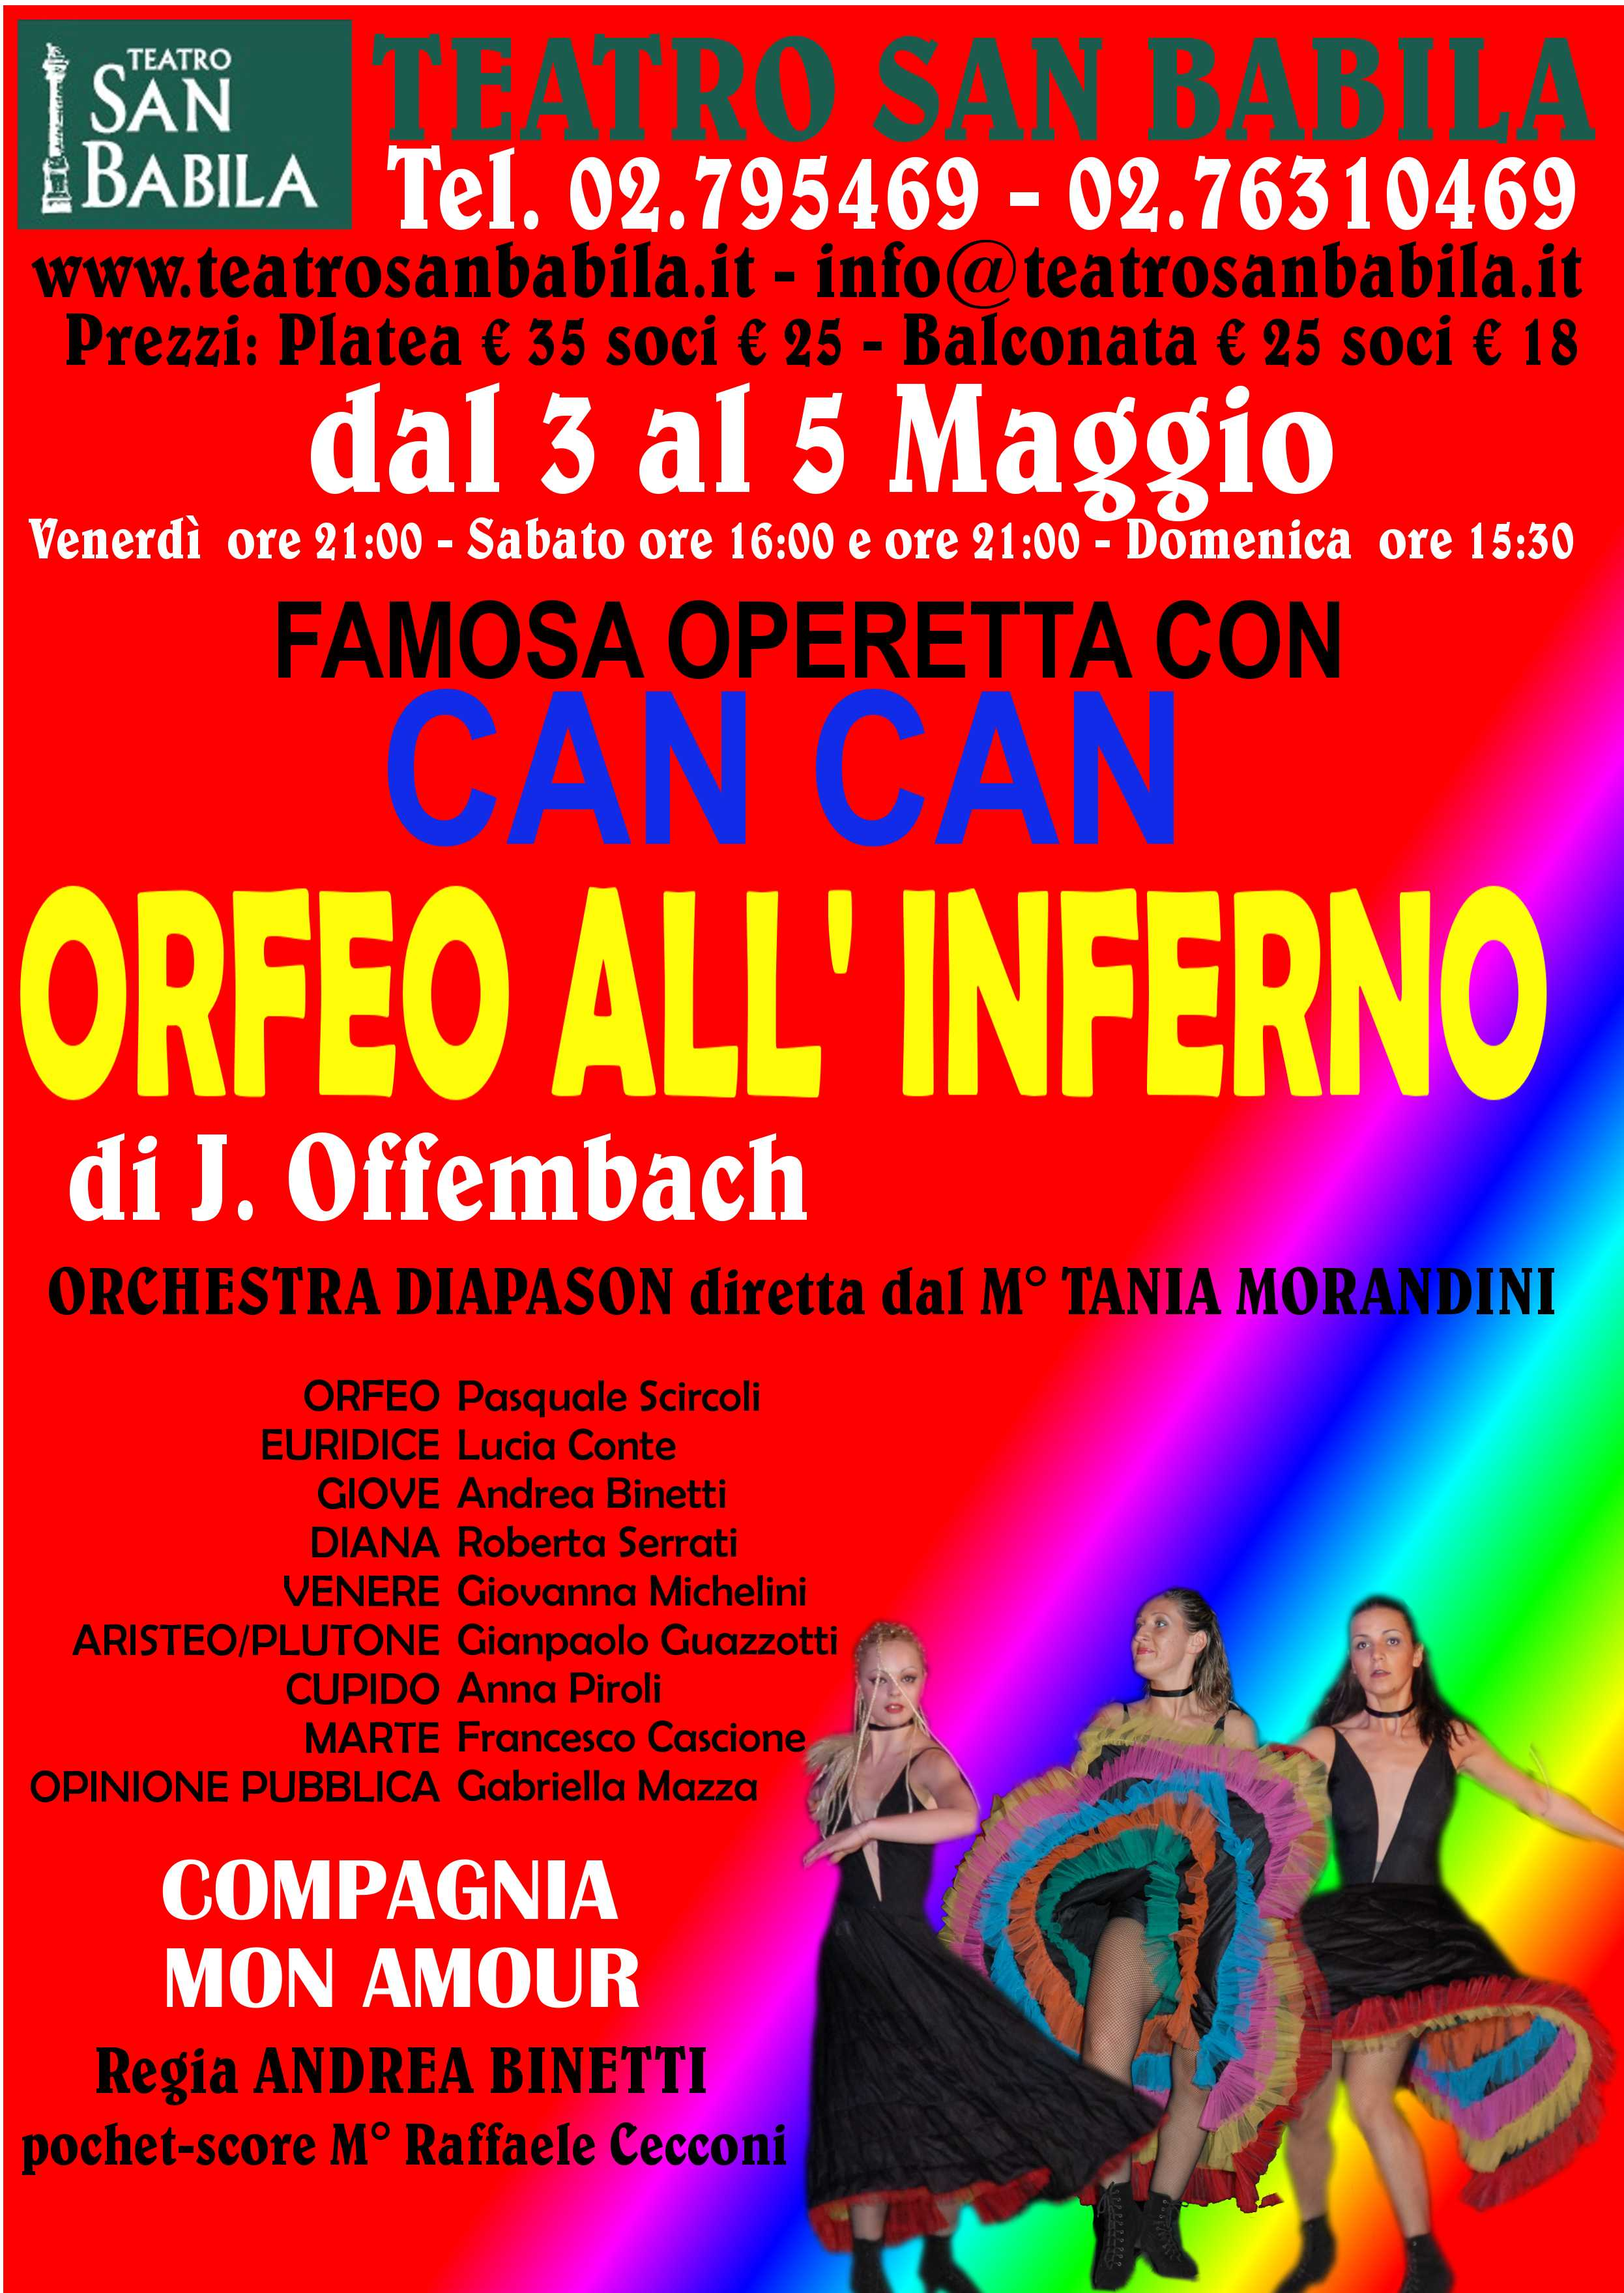 ORFEO ALL'INFERNO